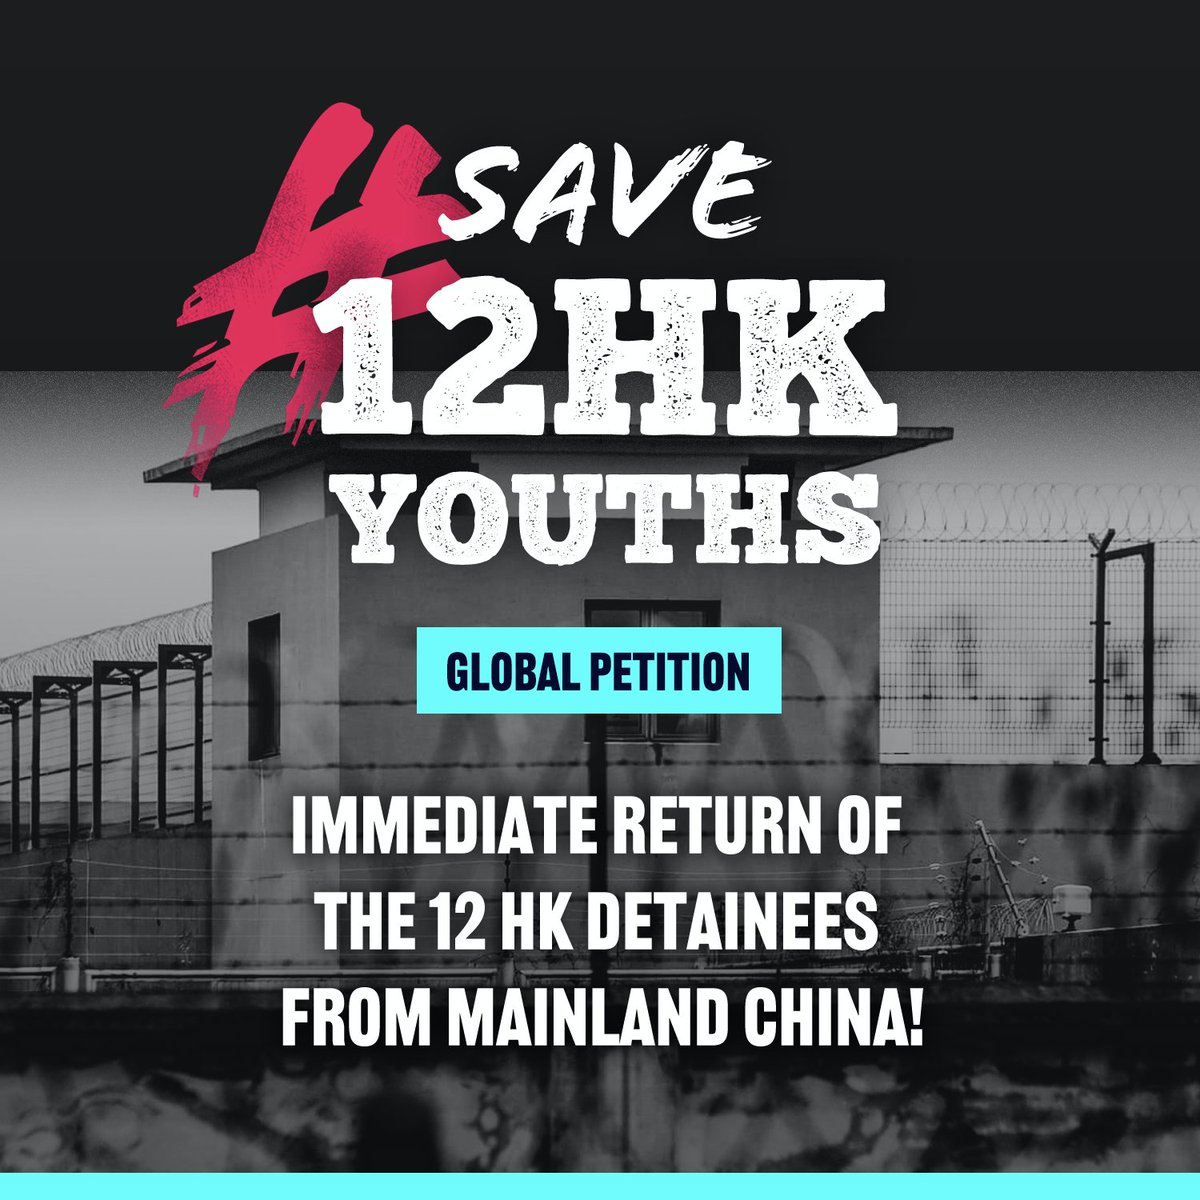 【Global Petition: Immediate Return of the 12 HK Detainees from Mainland China!】https://t.co/3EeBucNRgU  We urge people to sign on the petition that translated into Deutsche, Français, Español, Italiano, にほんご, 한국어, ไทย, Tiếng Việt, فارسی. @save12hkyouths #savehk12youths https://t.co/LekmtFVn8o